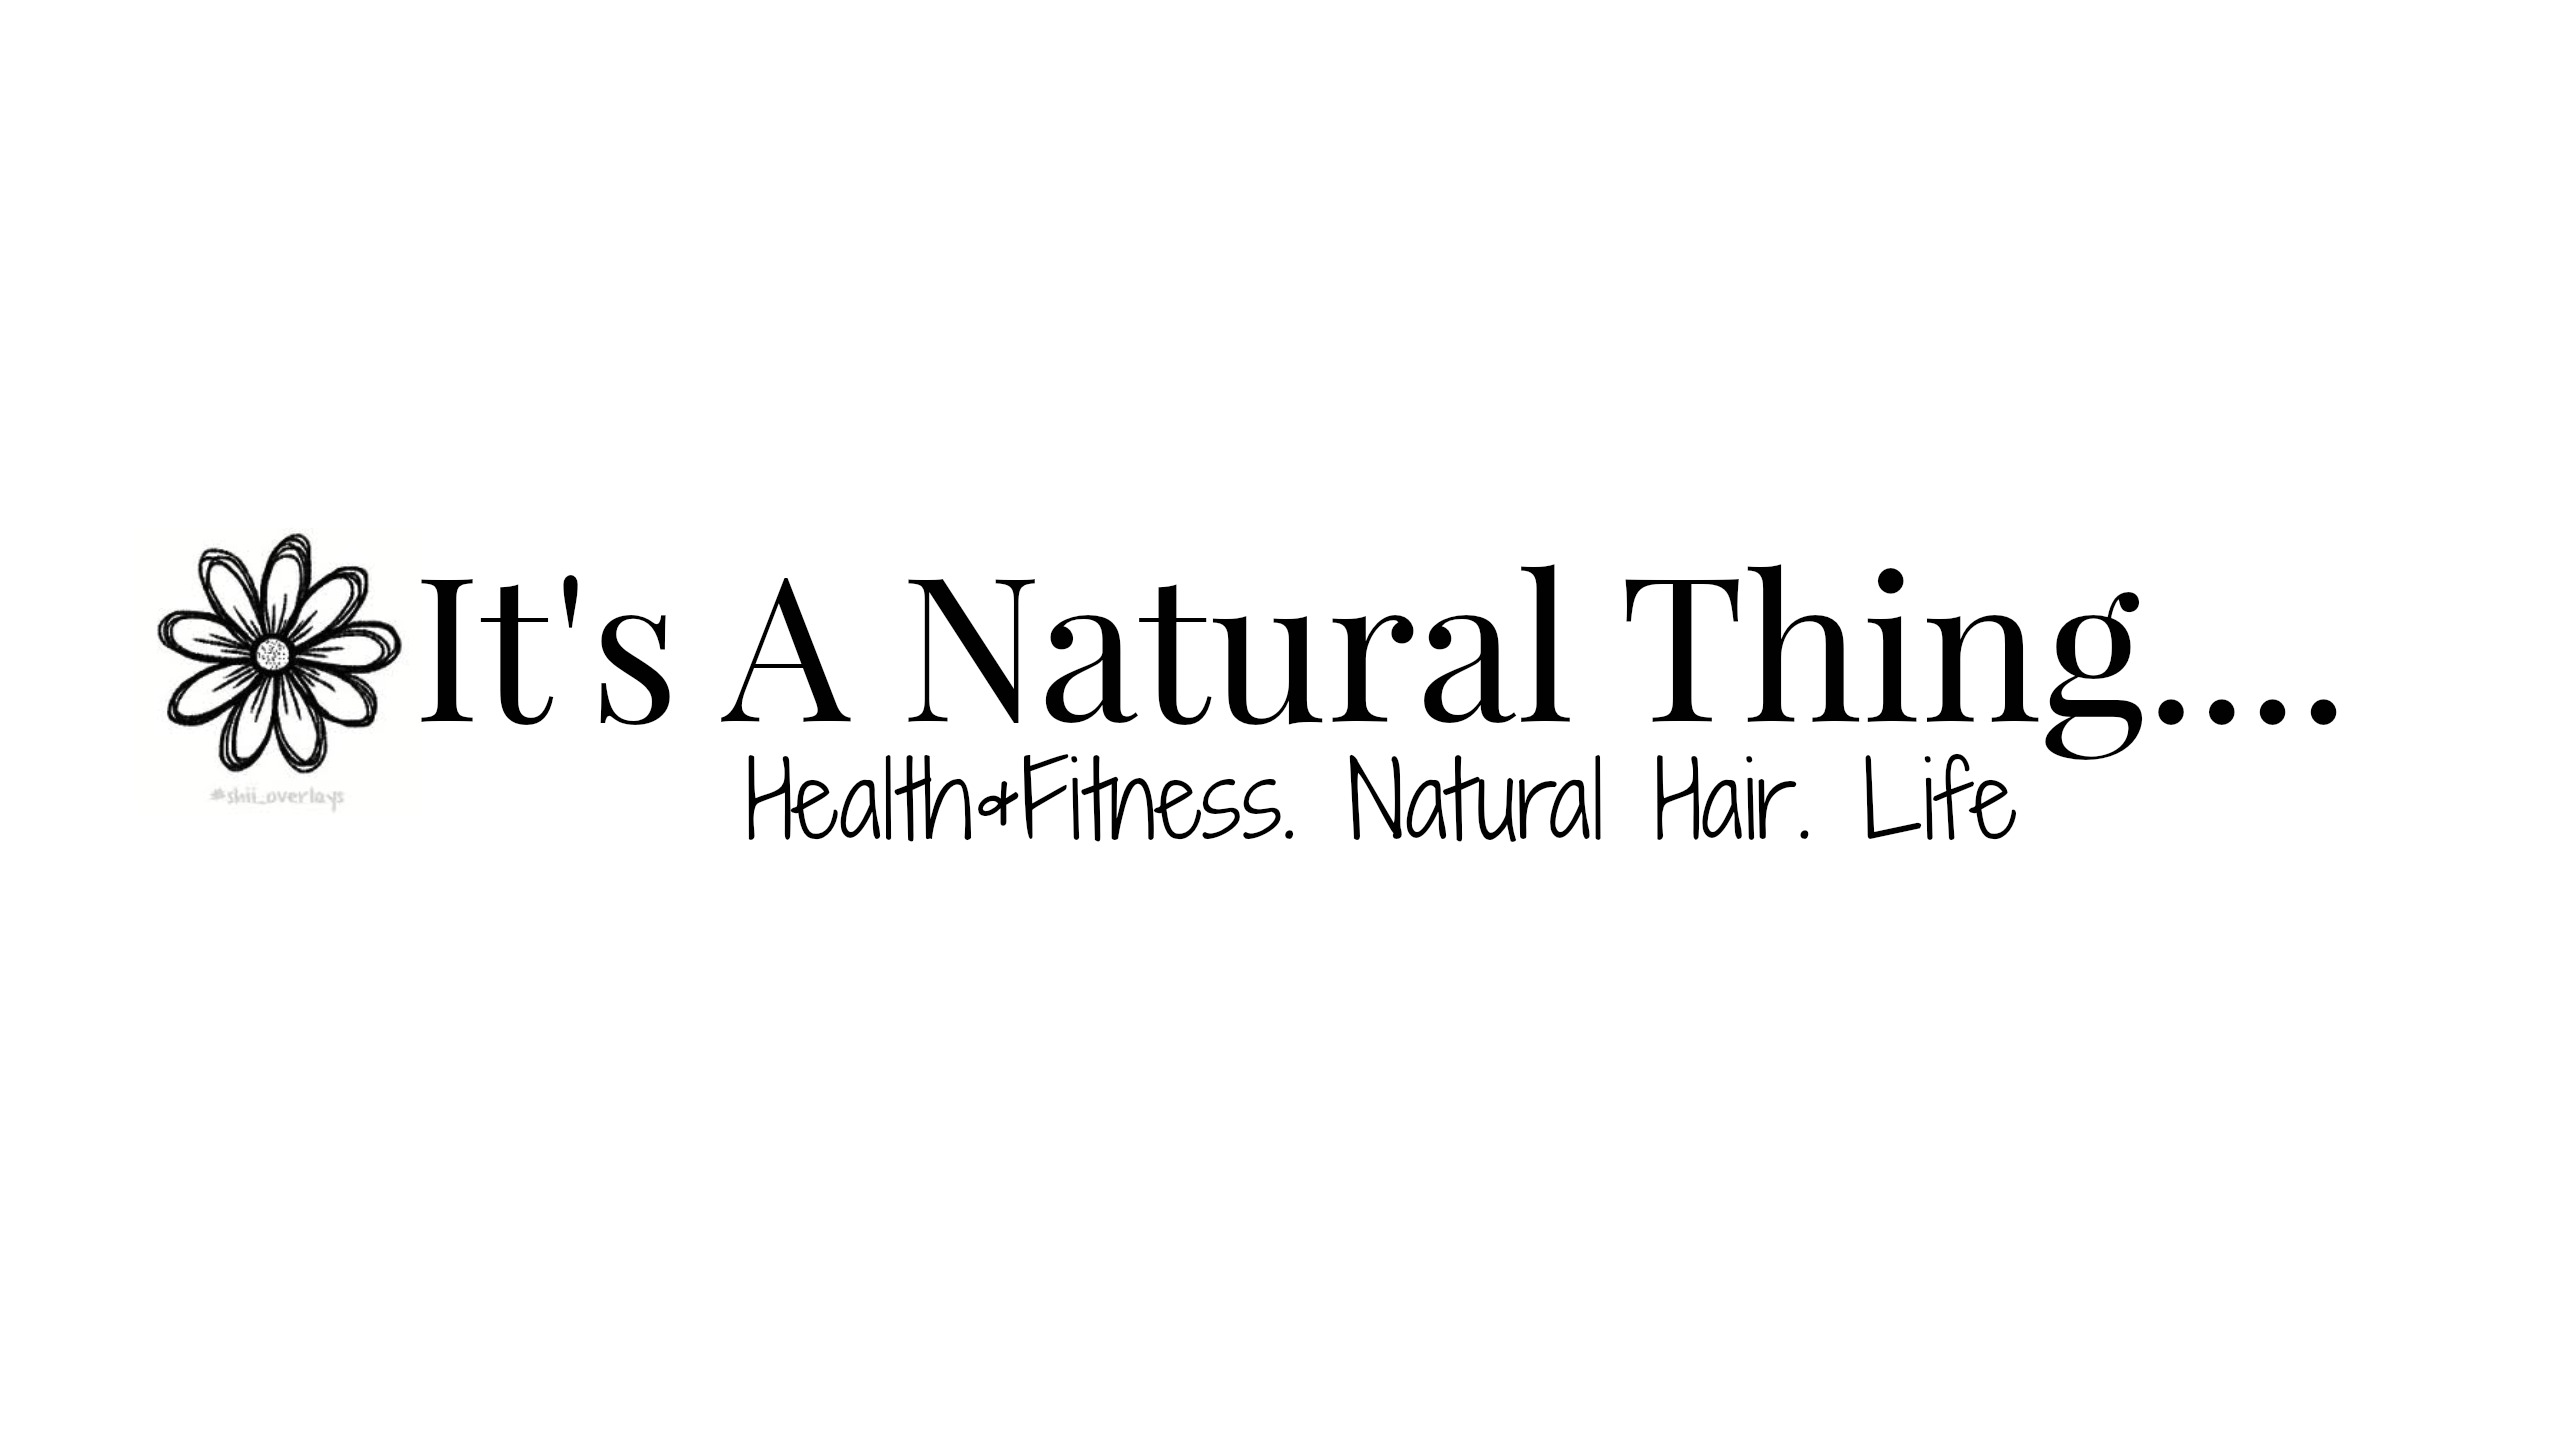 It's A Natural Thing...